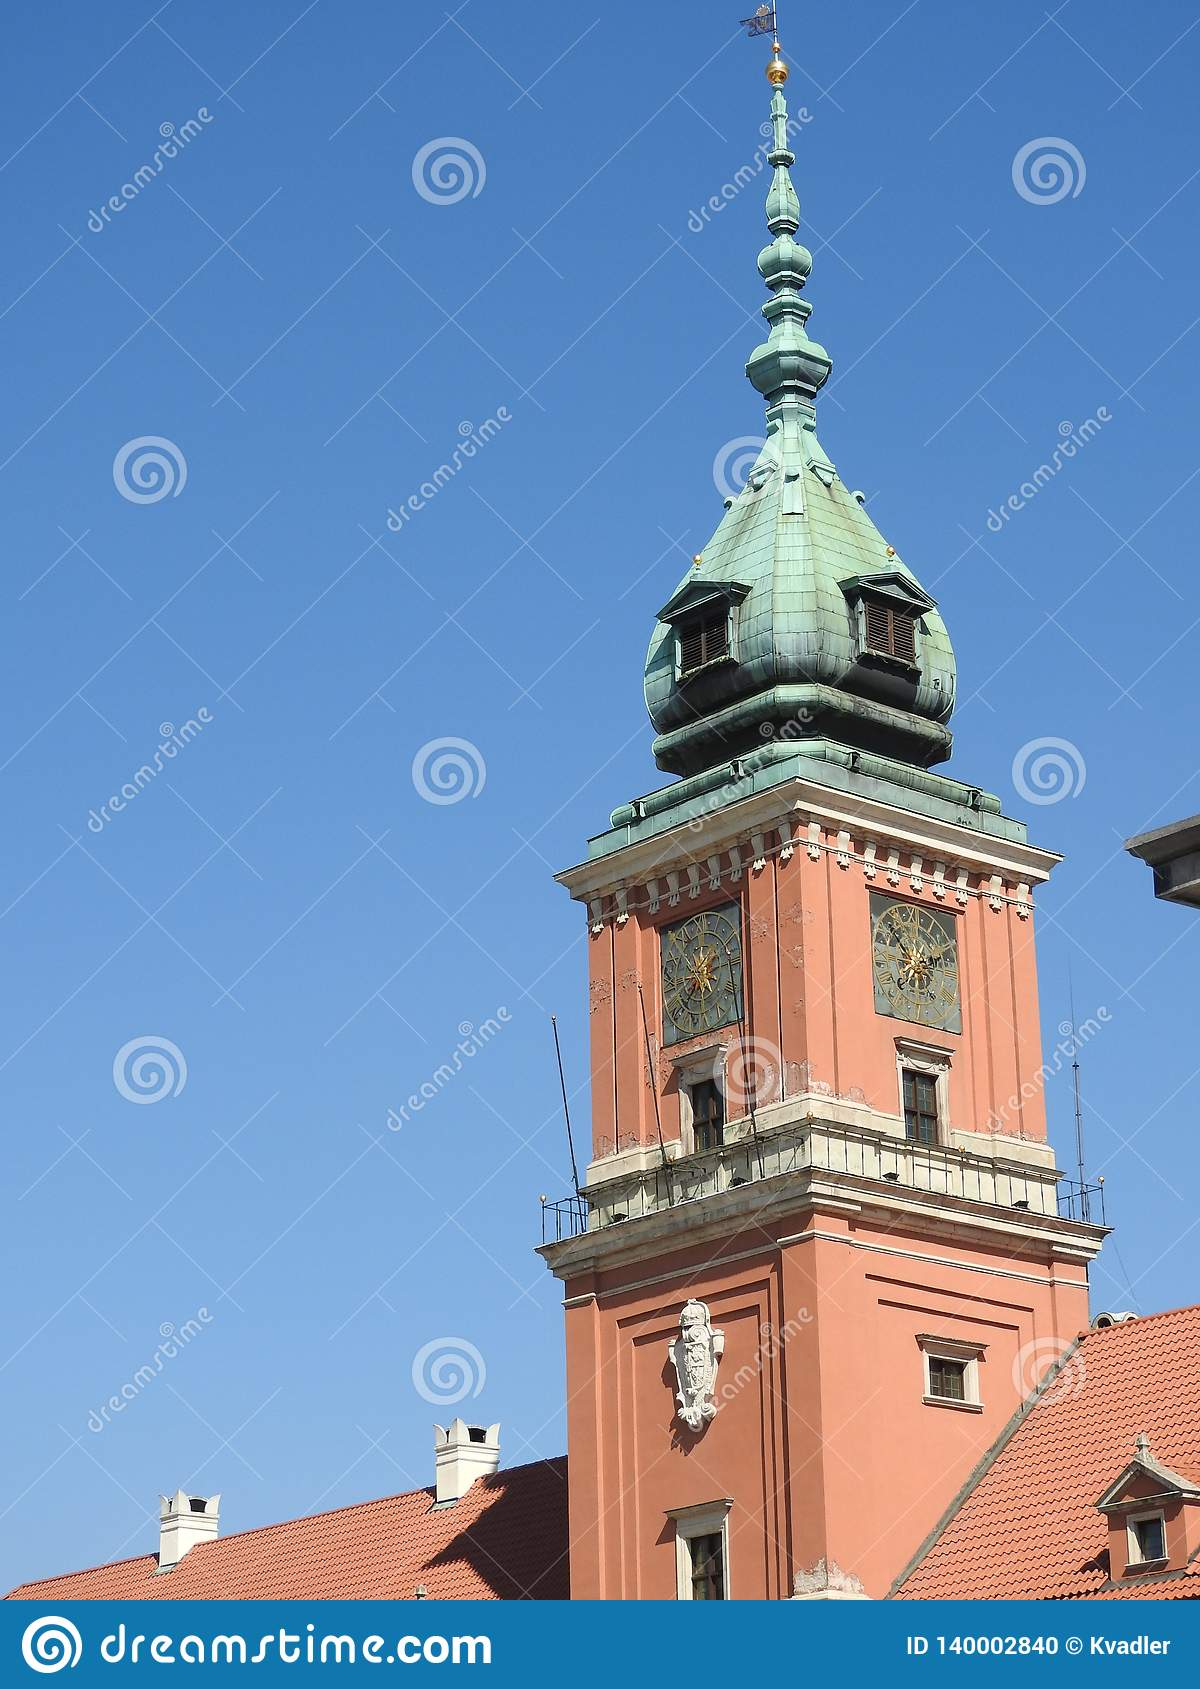 The architecture of the city of Warsaw in Poland